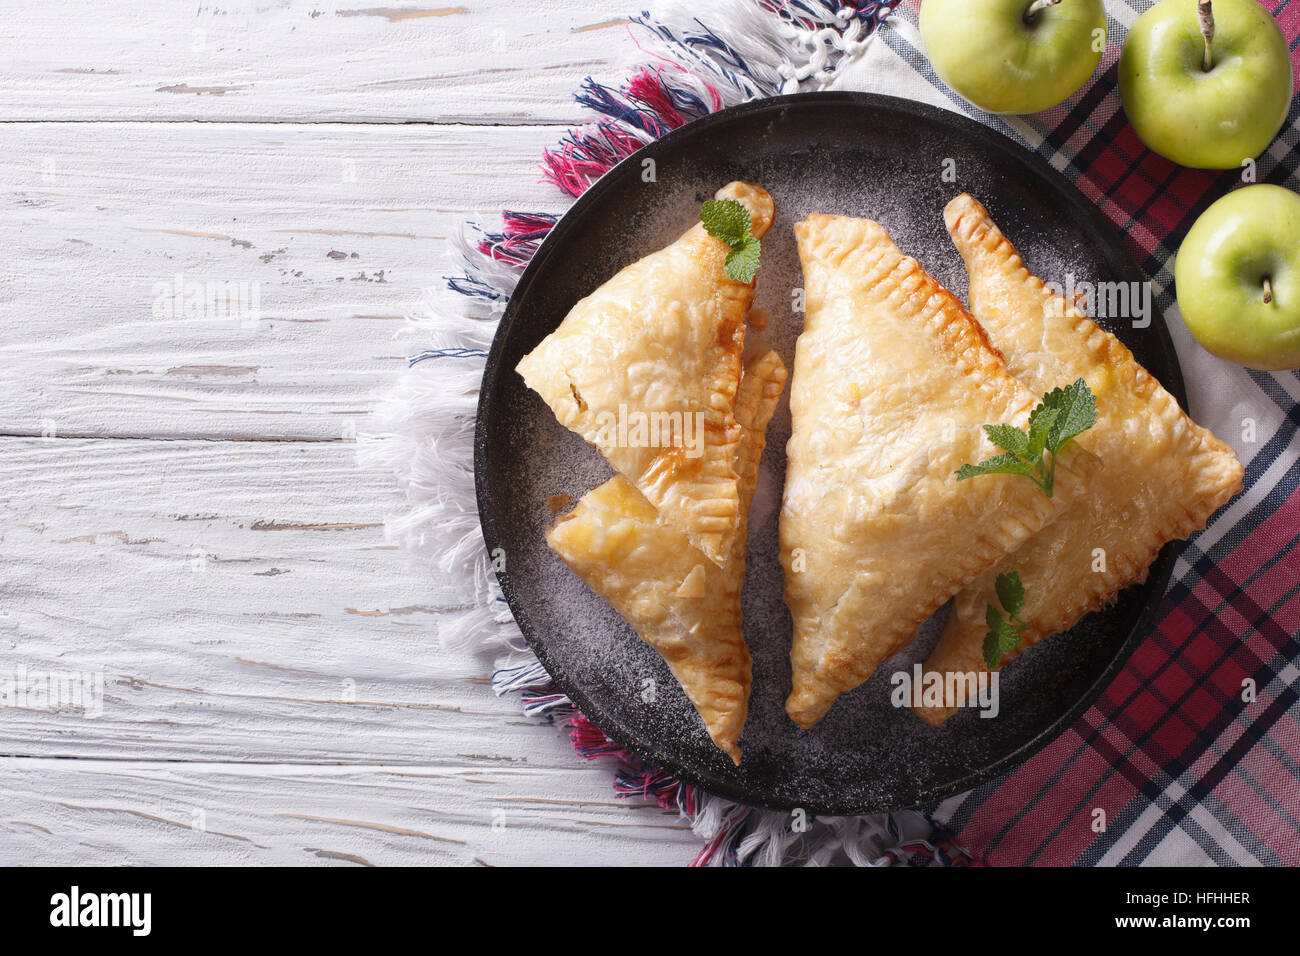 Delicious homemade apple pie turnover on a plate. horizontal view from above - Stock Image